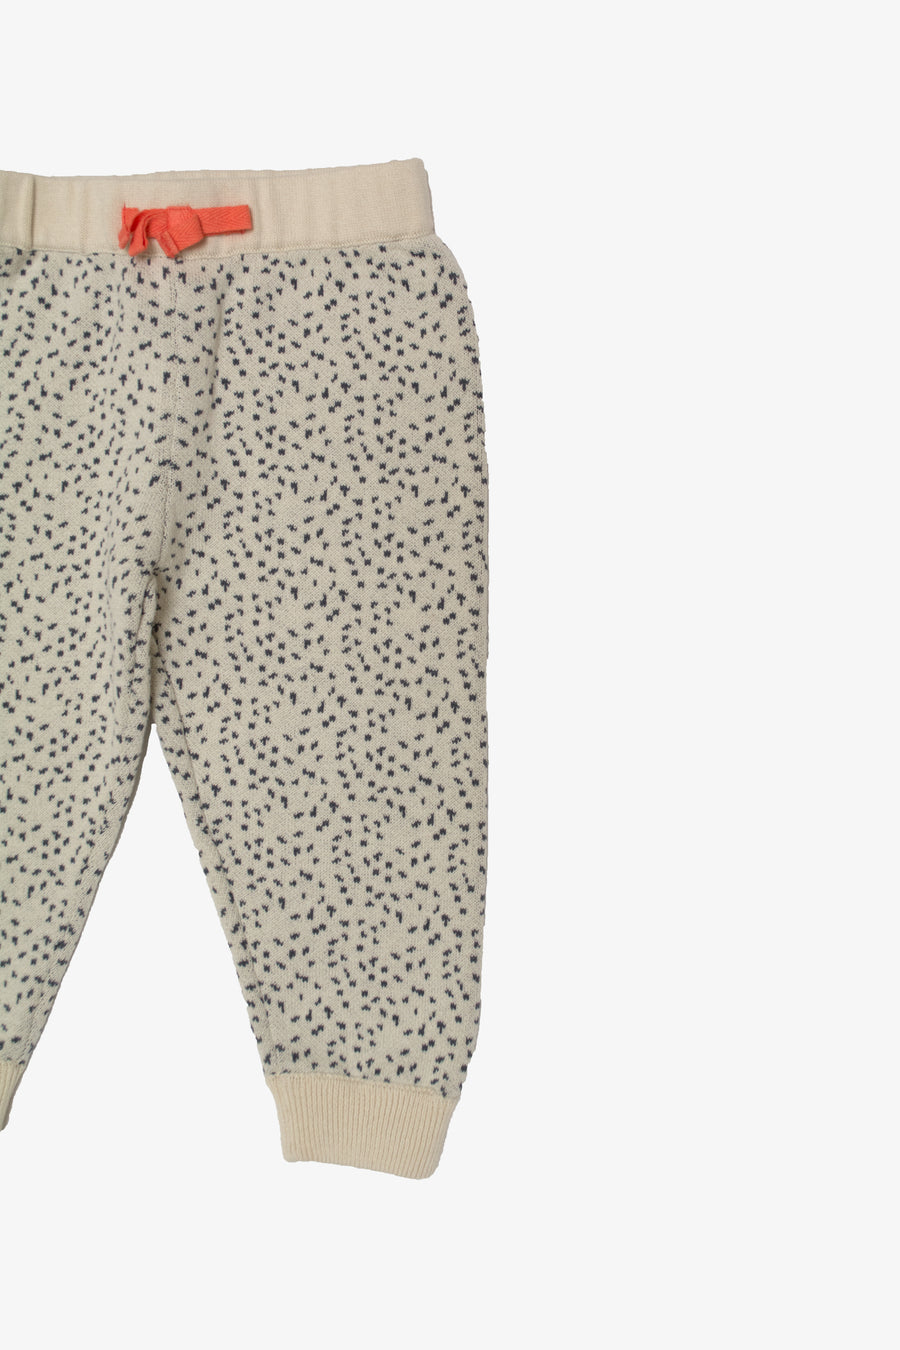 Black / Cream Dot Sweatpant